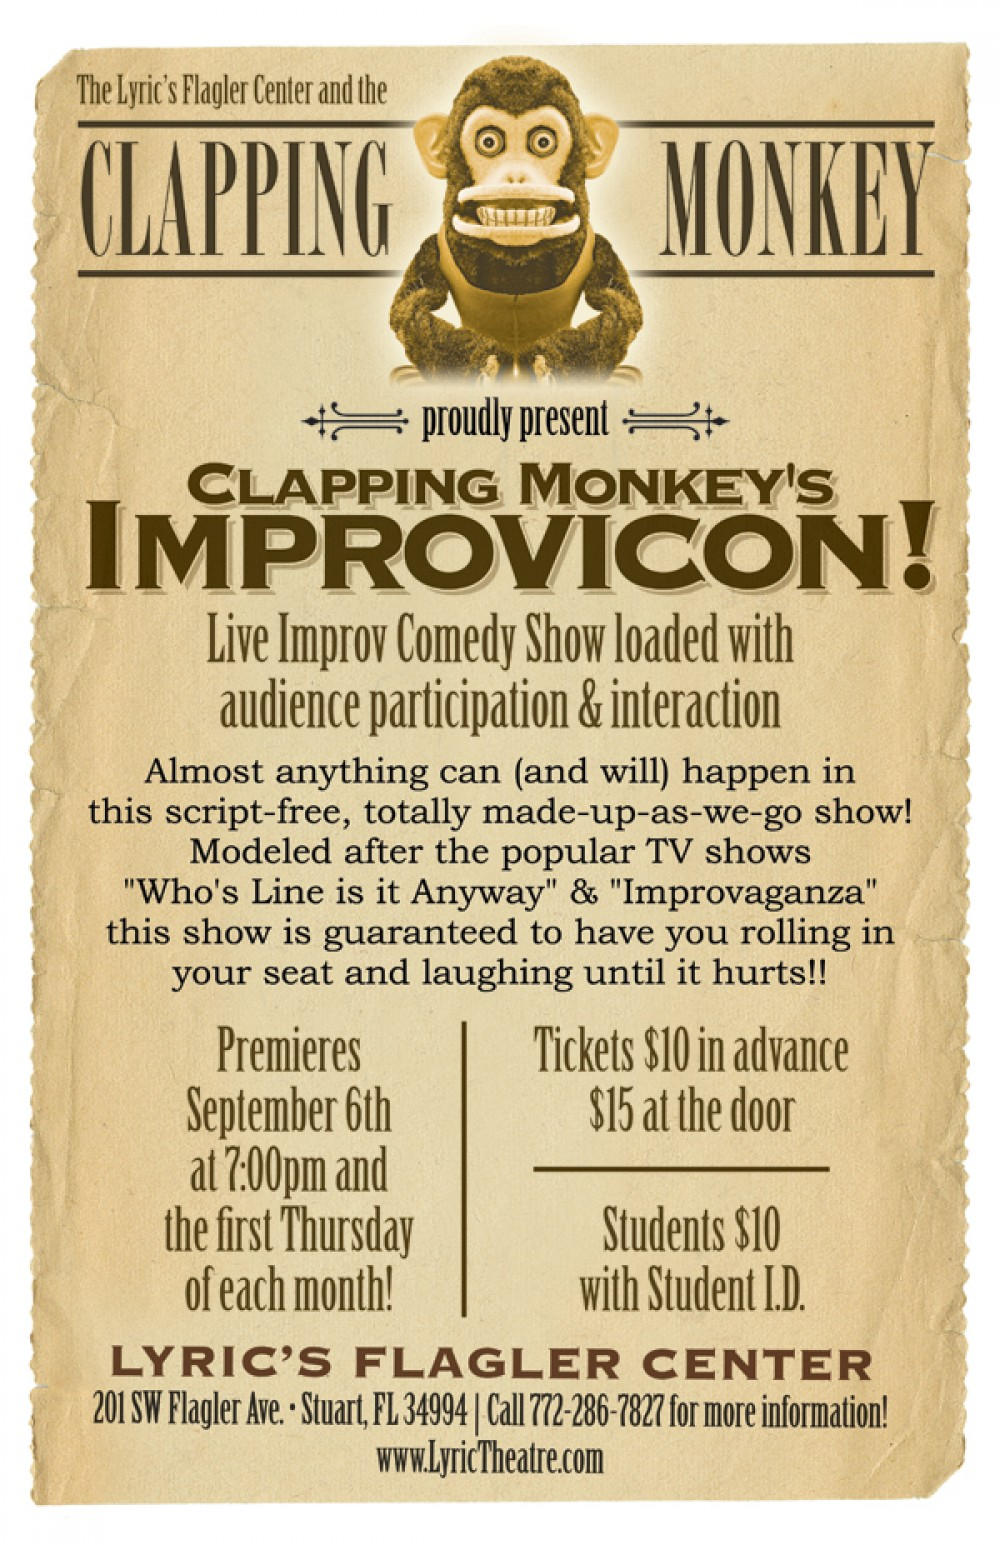 Clapping Monkey Improv Shows Tabloid Poster.jpg